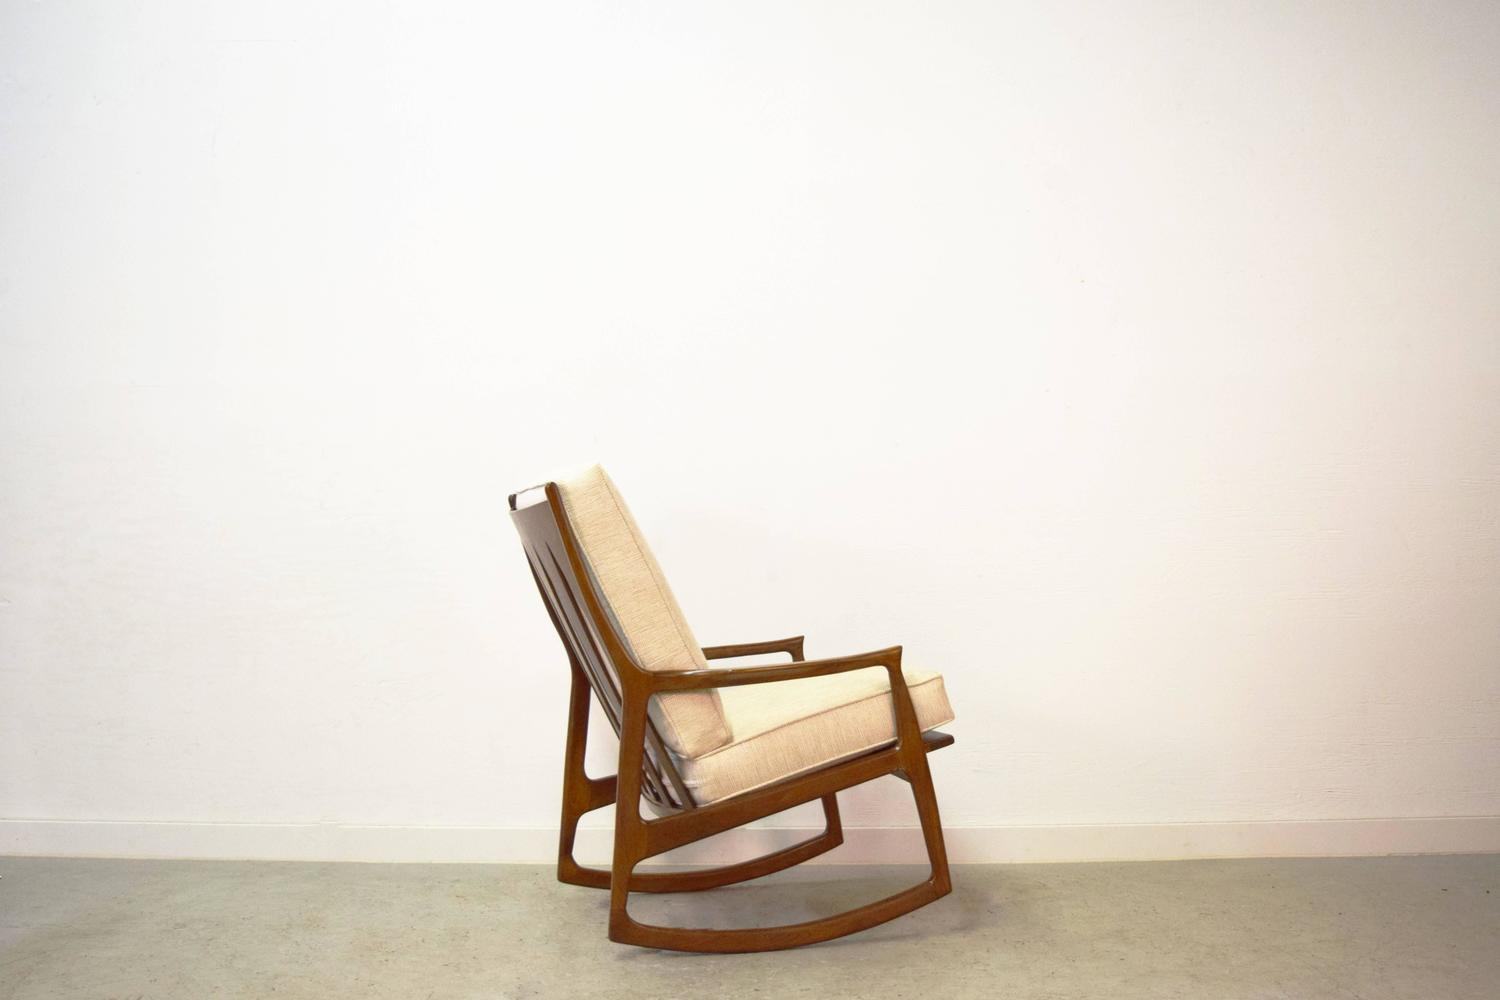 Milo Baughman Archie Walnut Rocking Lounge Chair For Sale at 1stdibs